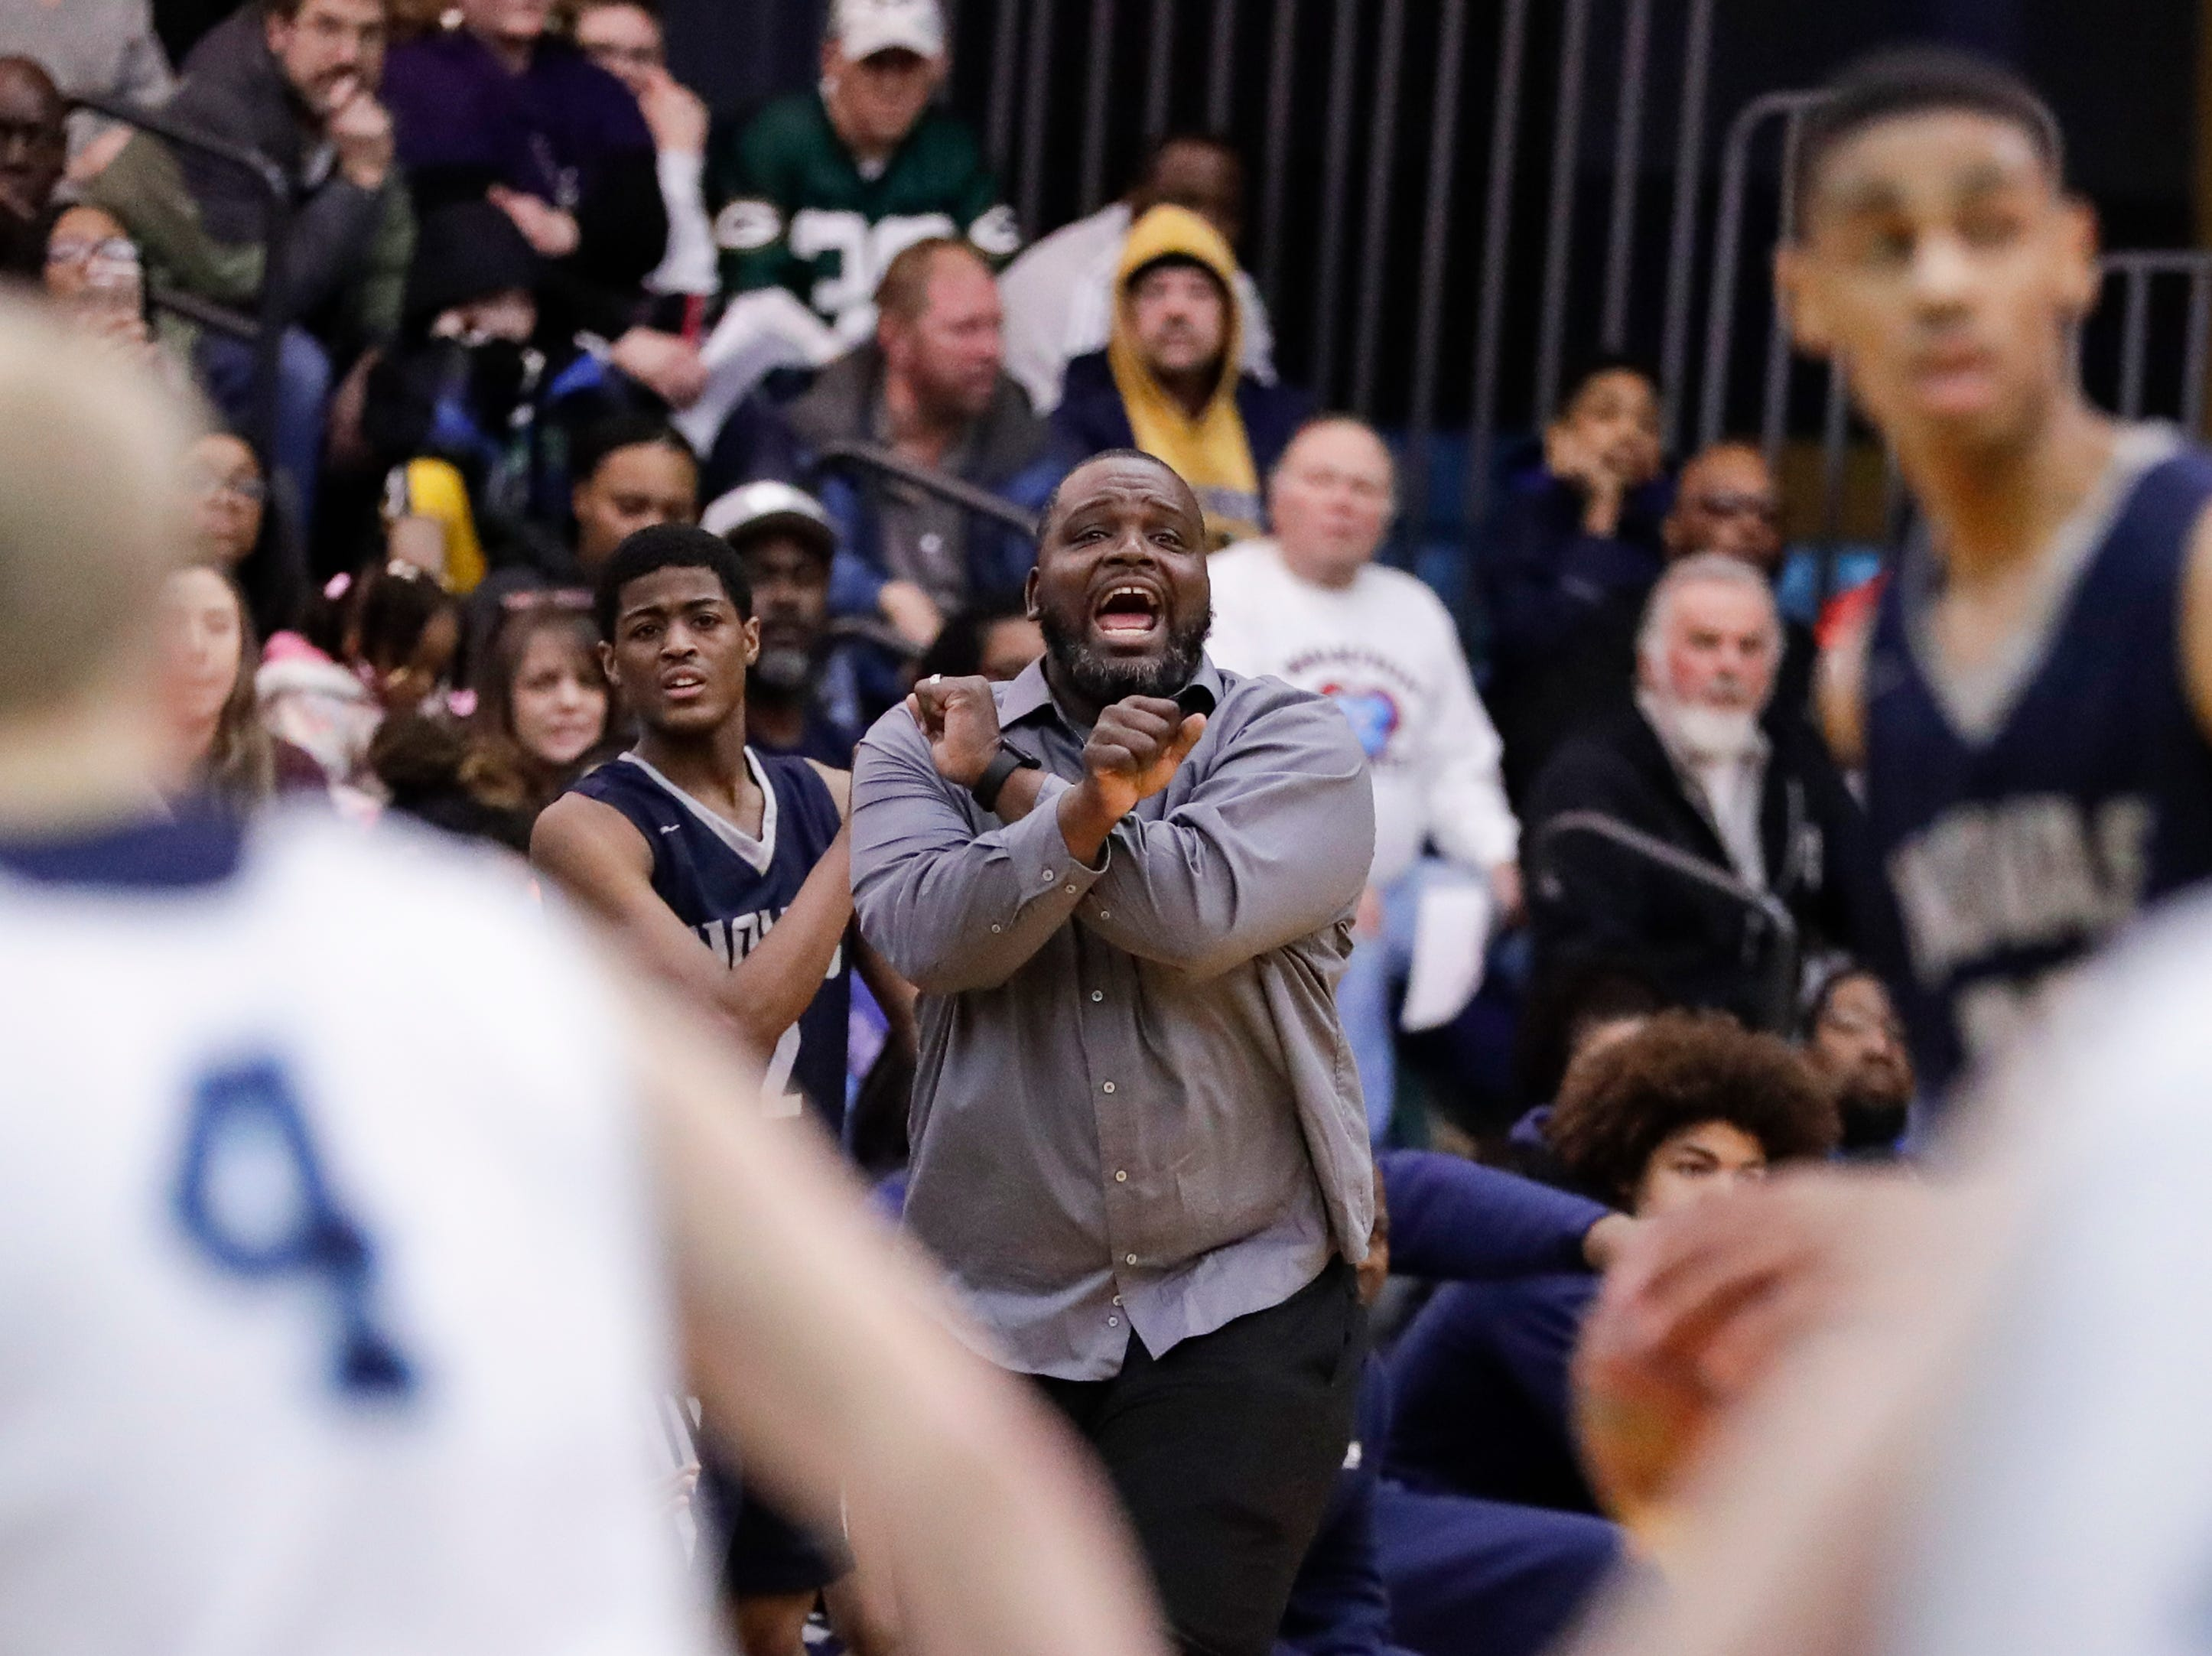 Milwaukee Academy of Science's head coach Agape Keys talks to his team during a WIAA Division 4 sectional championship game against Roncalli at Sheboygan North High School Saturday, March 9, 2019, in Sheboygan, Wis. Joshua Clark/USA TODAY NETWORK-Wisconsin